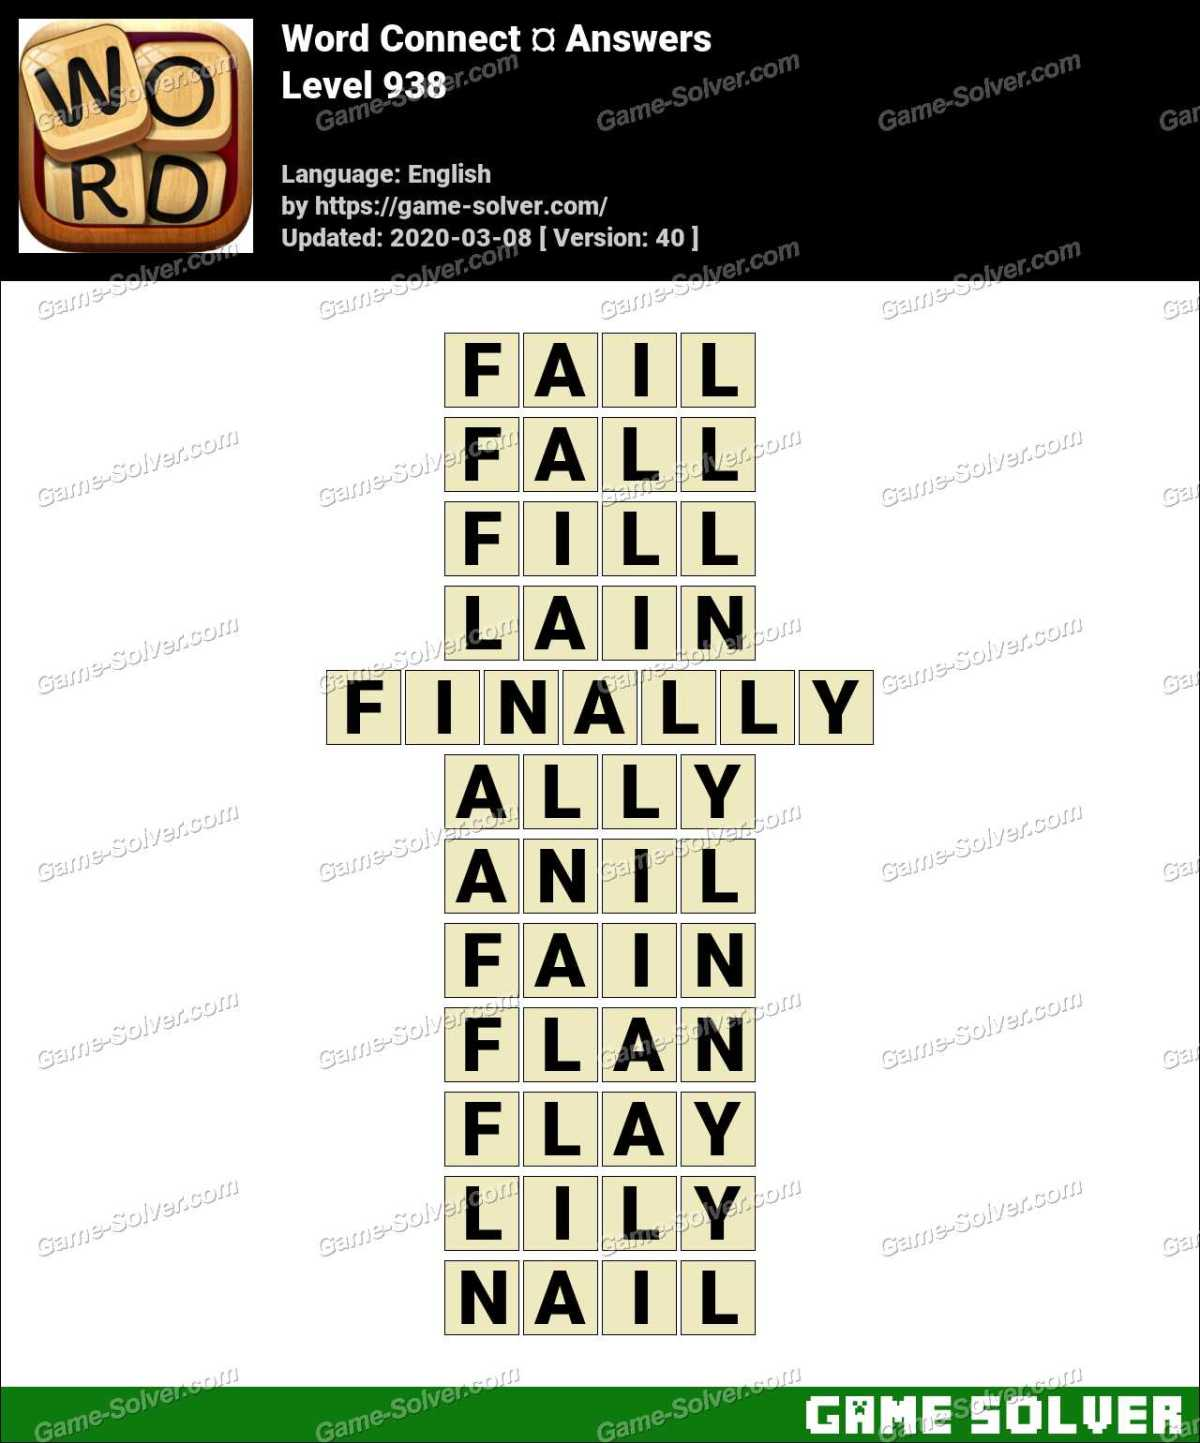 Word Connect Level 938 Answers